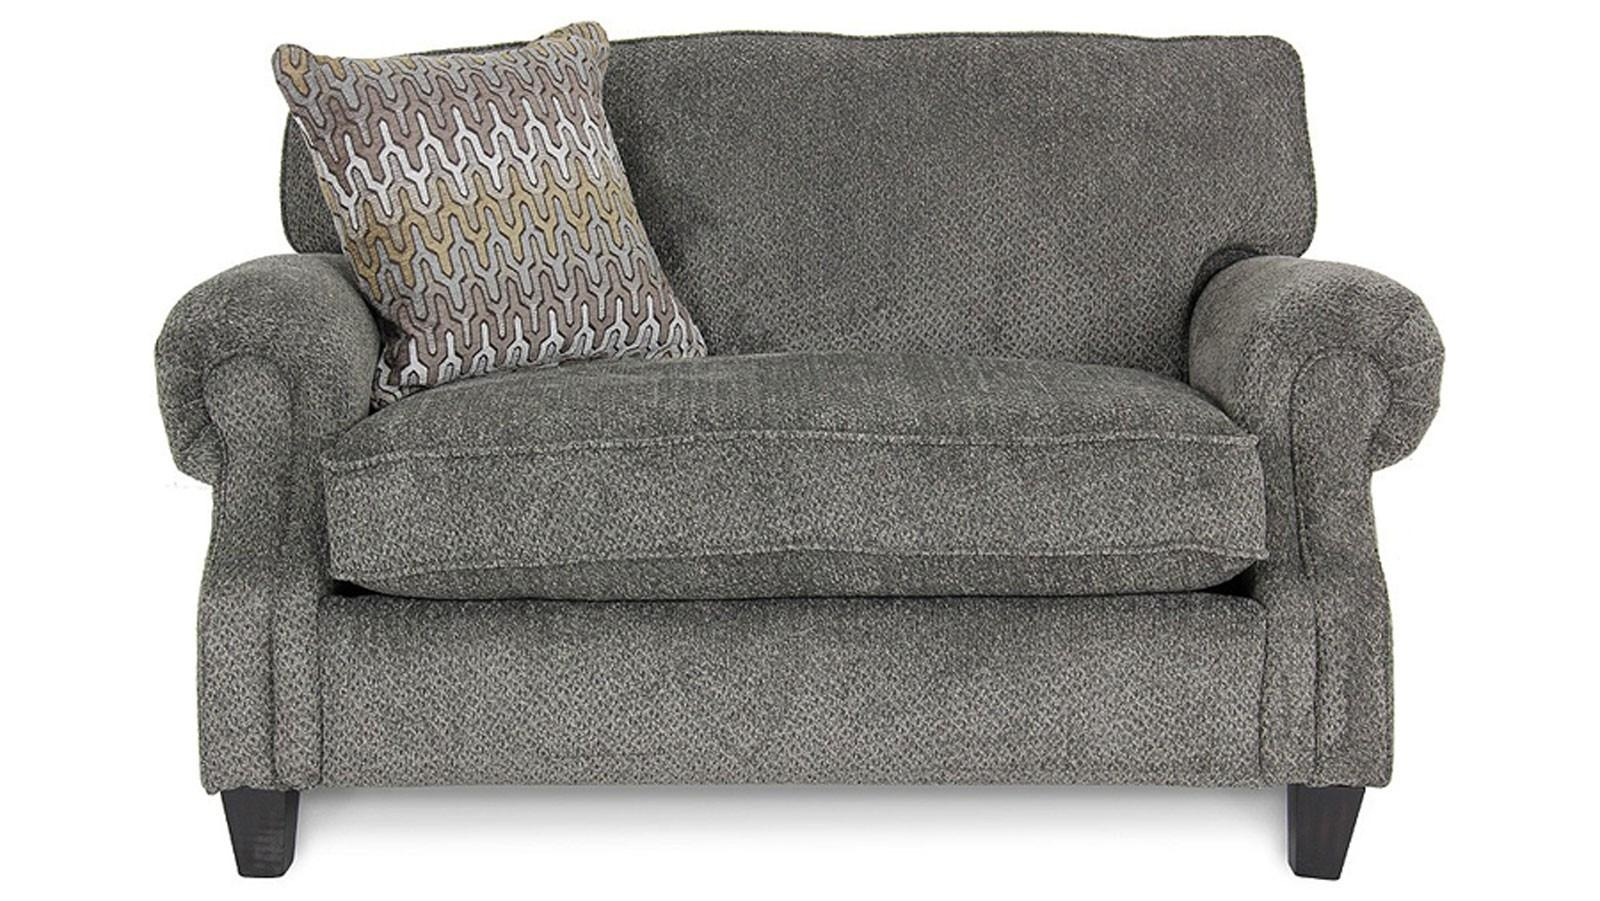 Loveseat double sofa bed Featured image from Loveseat double sofa bed KTUVLWW